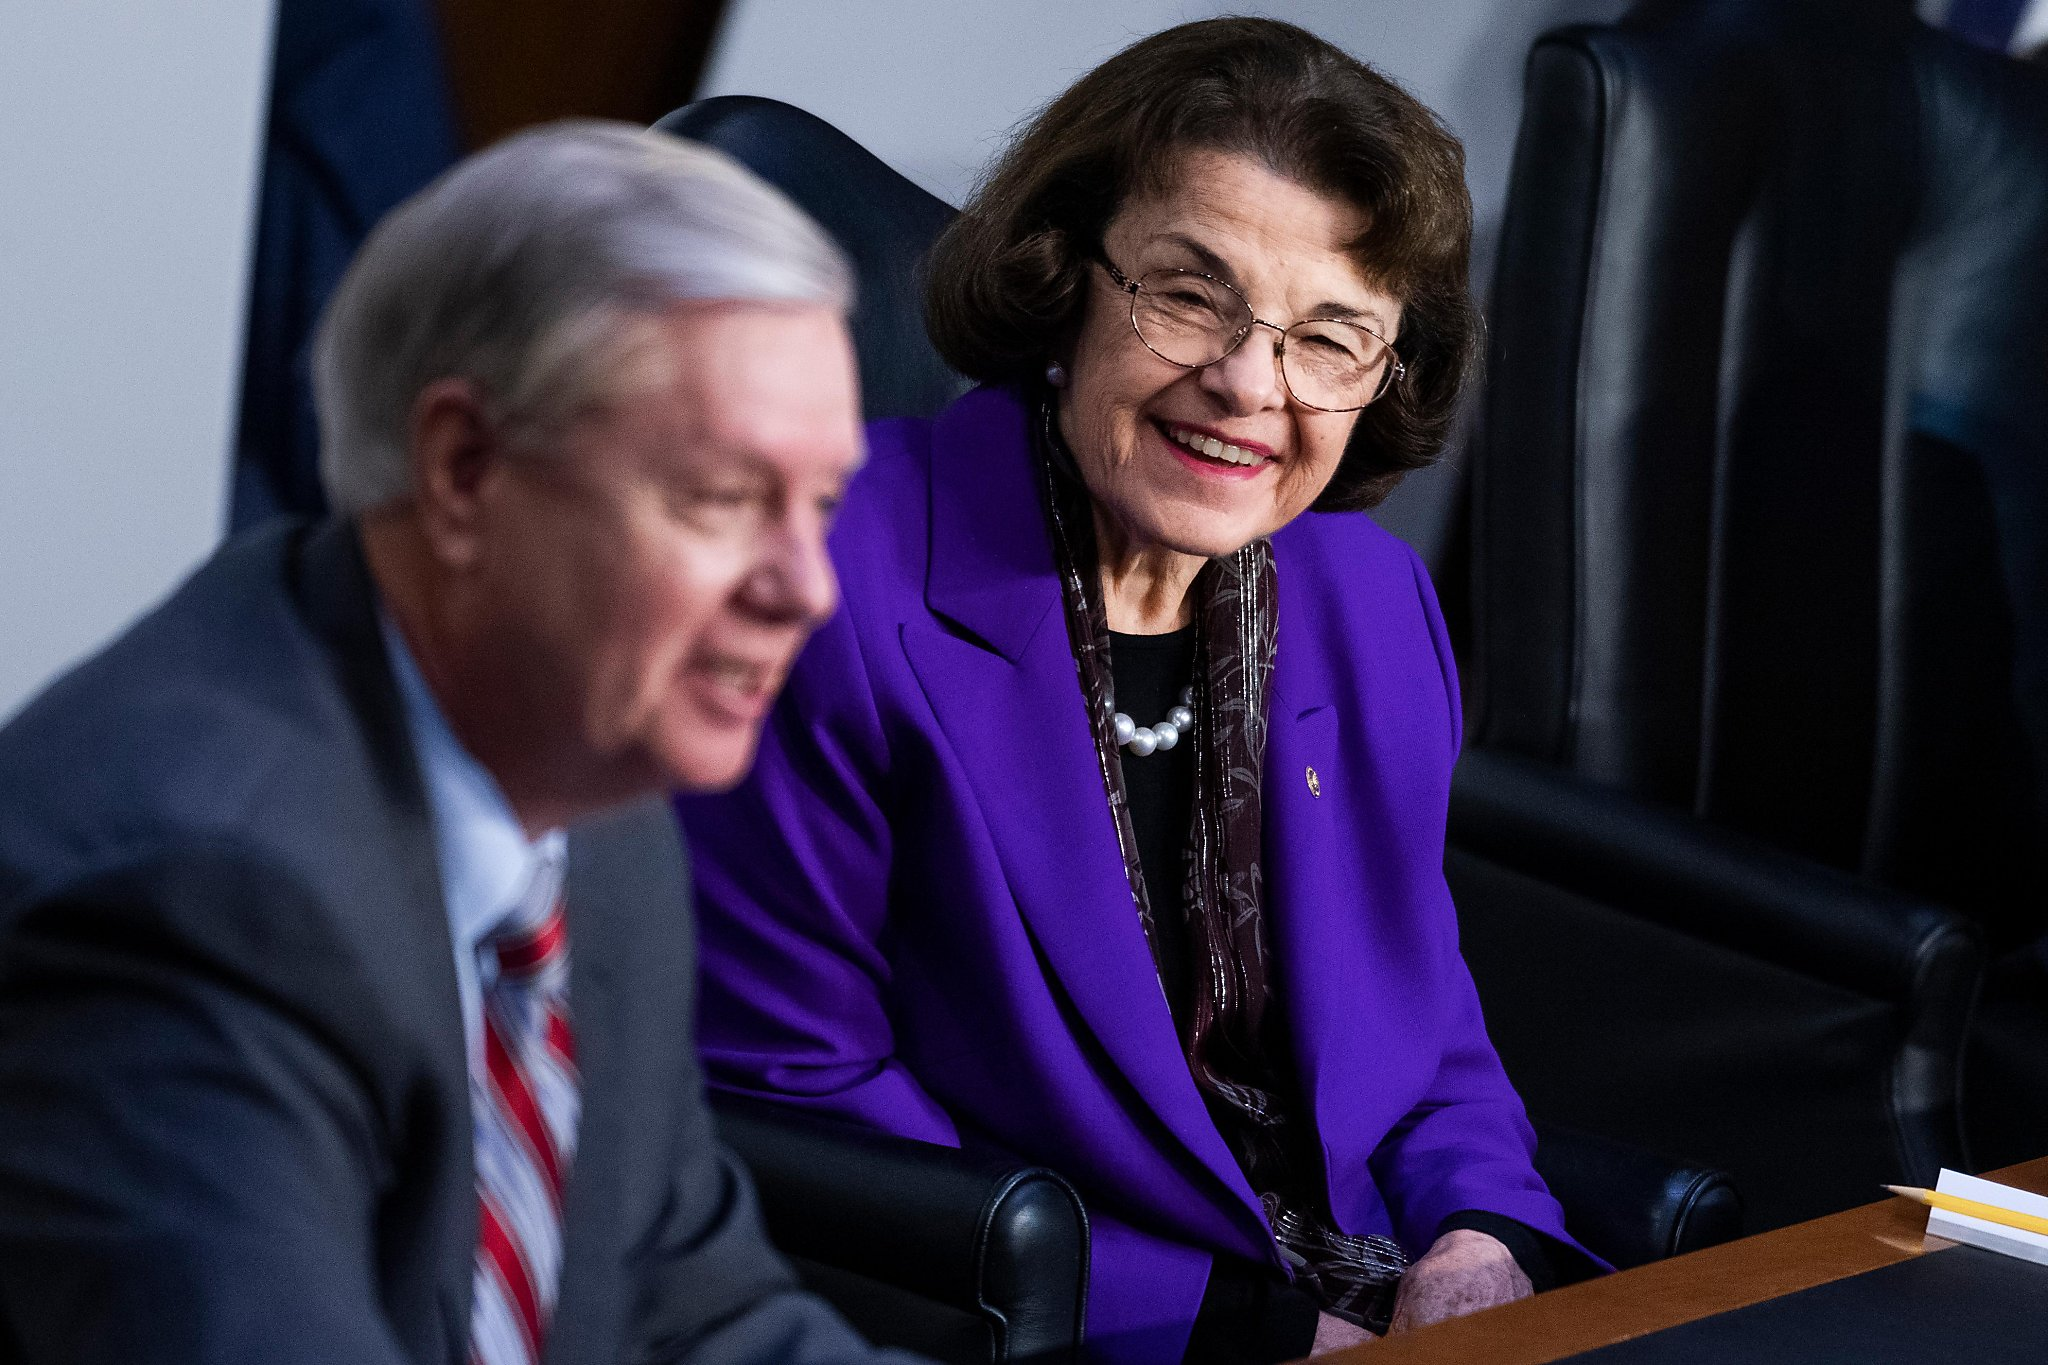 dianne feinstein faces calls to step aside after amy coney barrett hearing sfchronicle com dianne feinstein faces calls to step